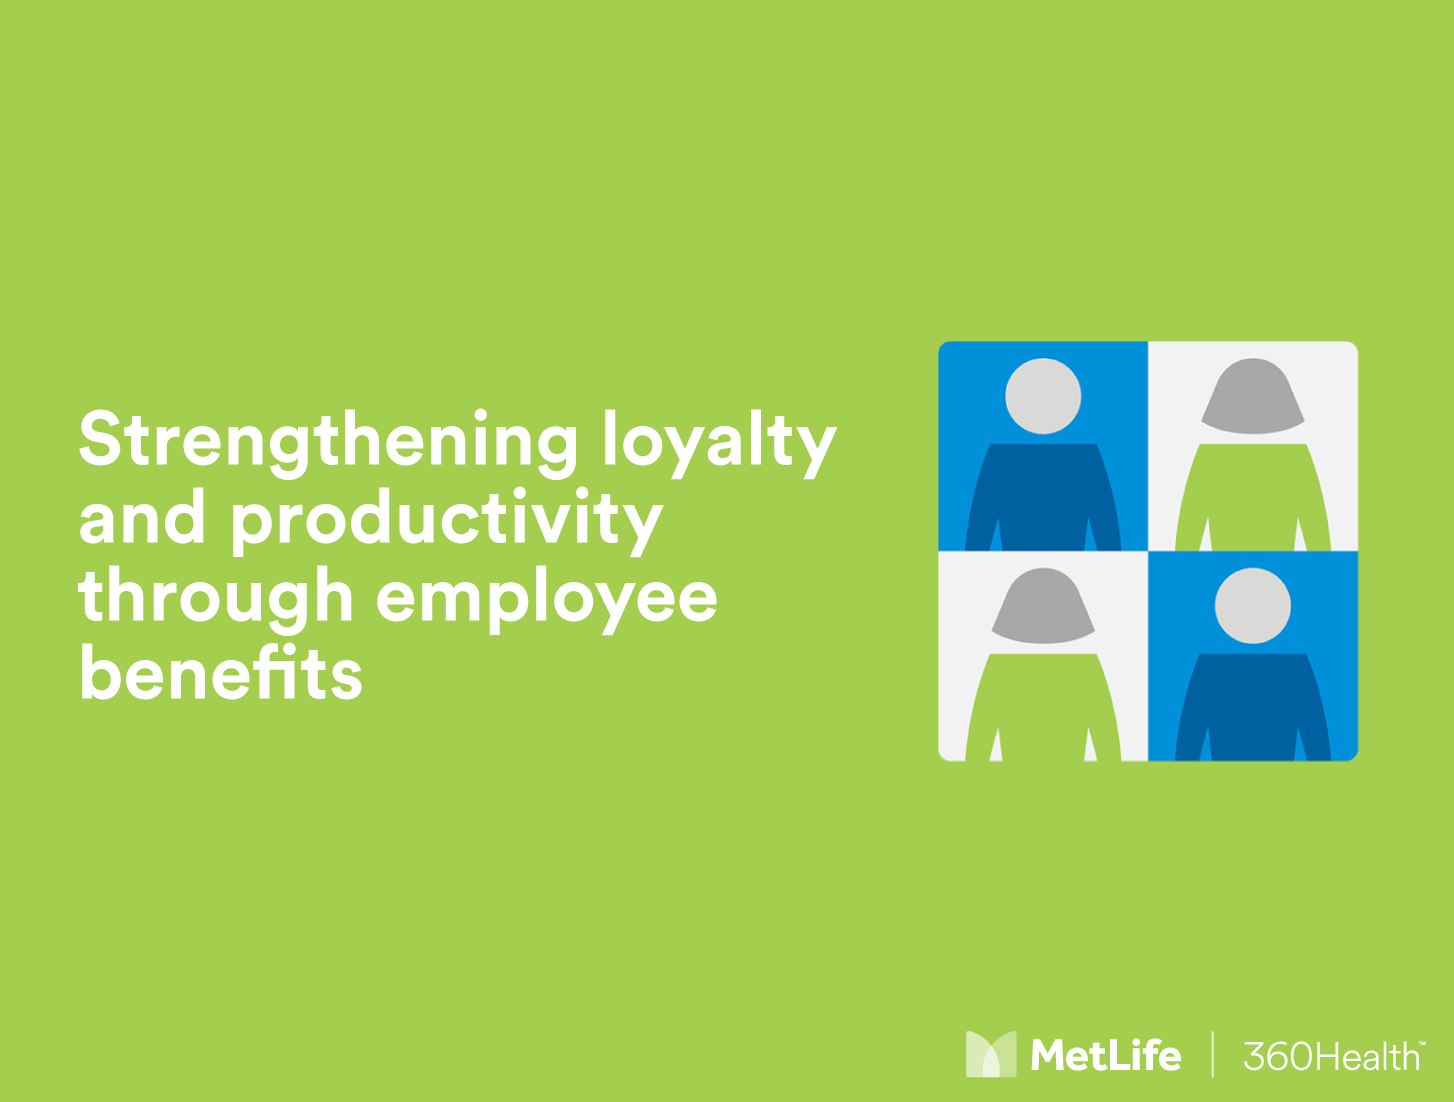 Strengthening loyalty and productivity through employee benefits